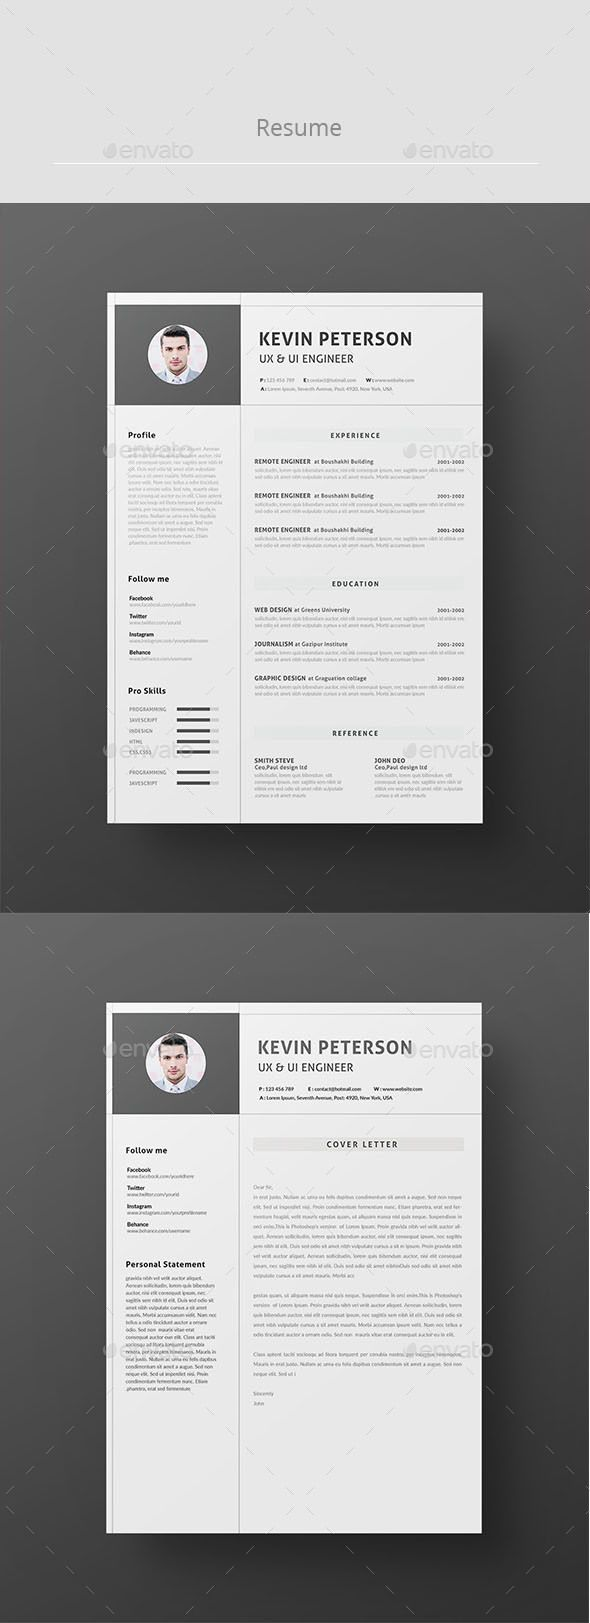 241 best CURRICULUM VITAE images on Pinterest | Resume templates, Cv ...